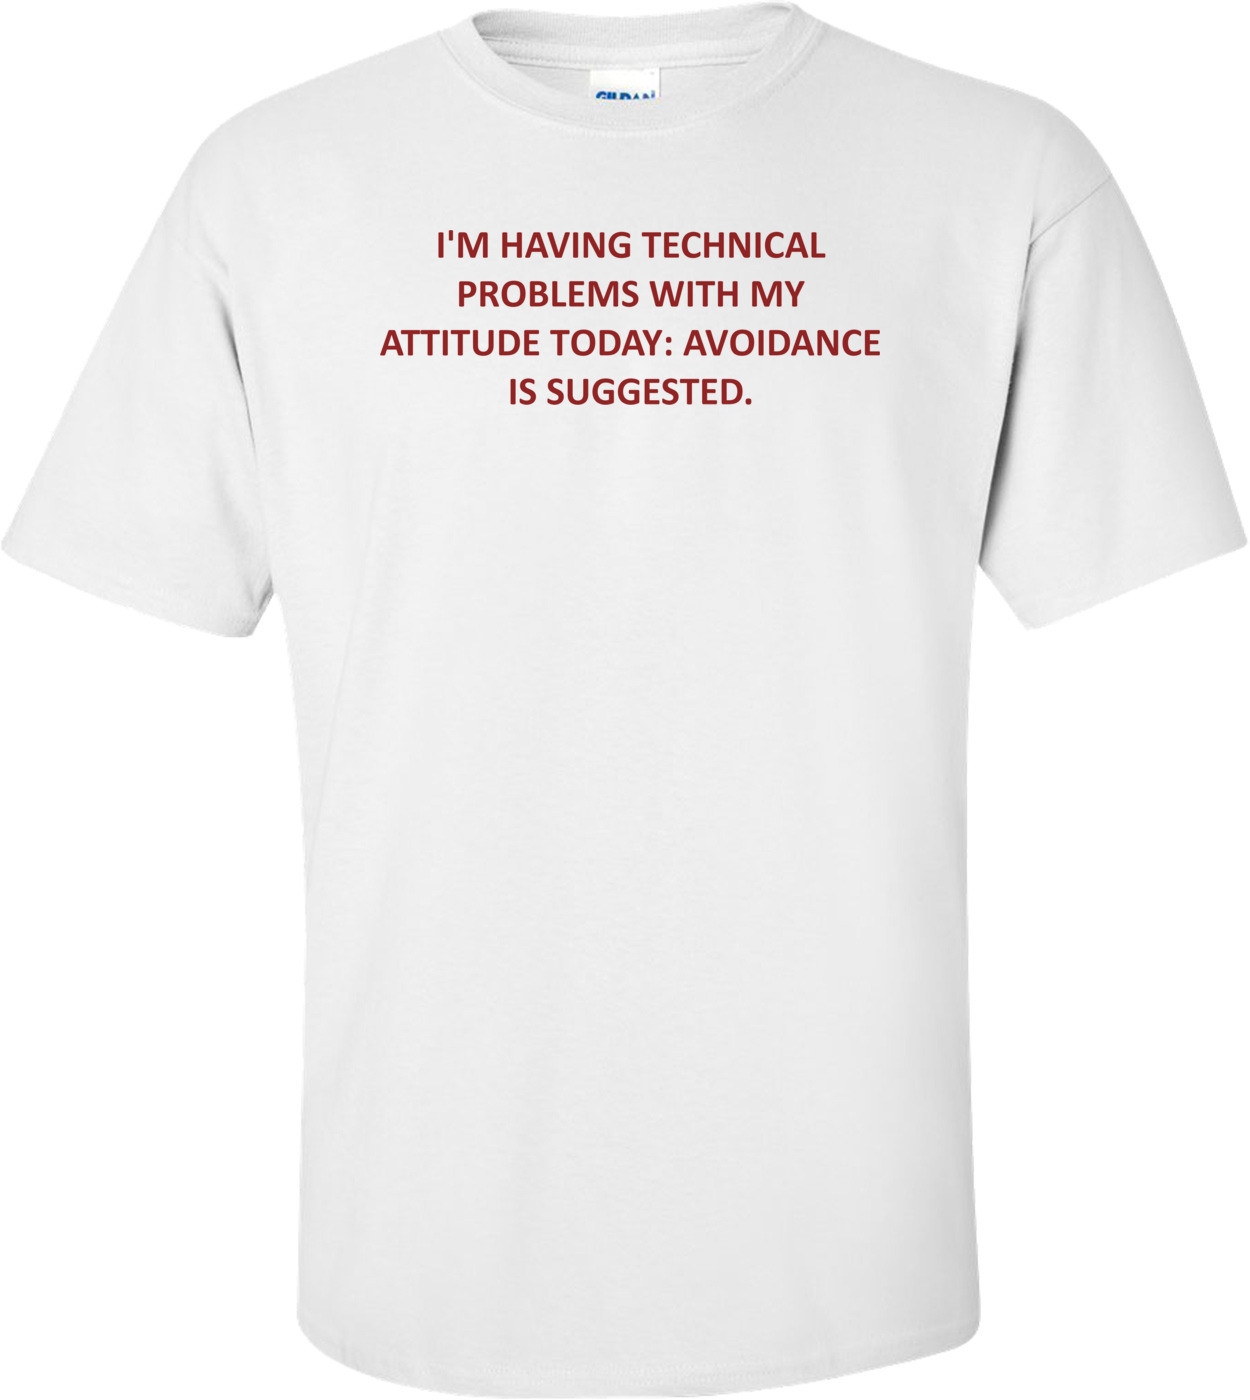 I'M HAVING TECHNICAL PROBLEMS WITH MY ATTITUDE TODAY: AVOIDANCE IS SUGGESTED. Shirt